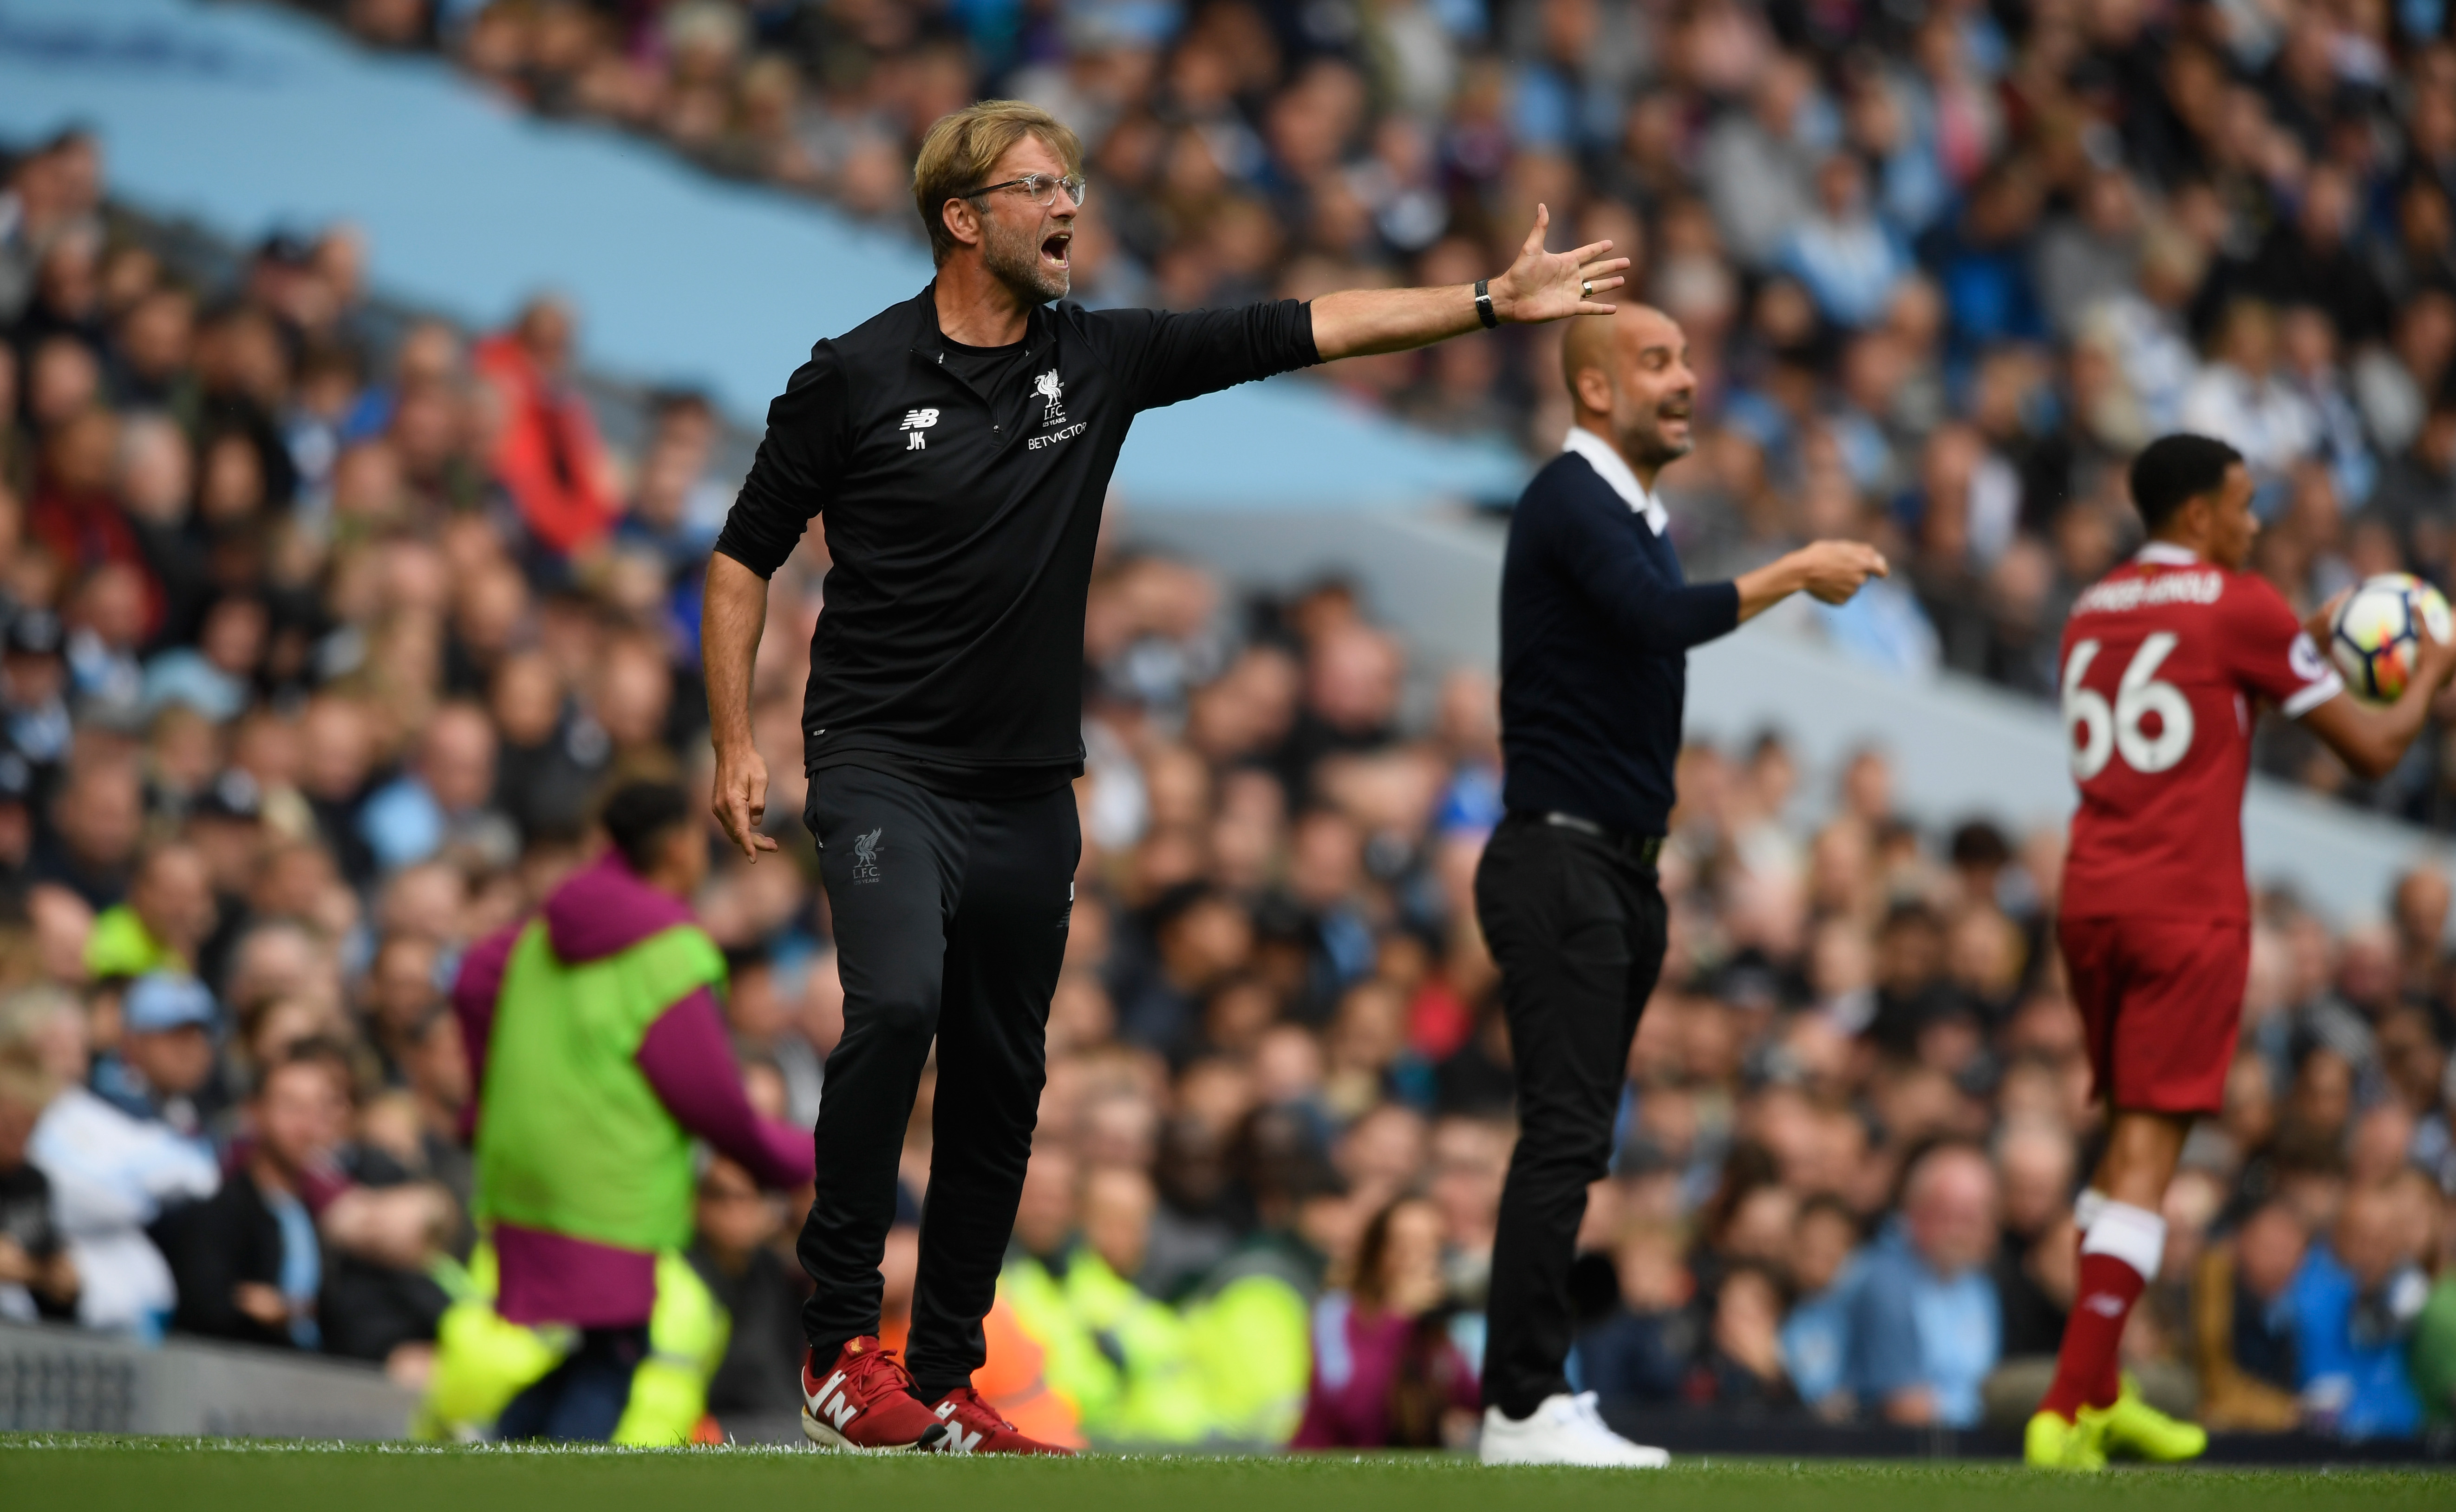 Liverpool Will Play Manchester City in the 2019 Community Shield